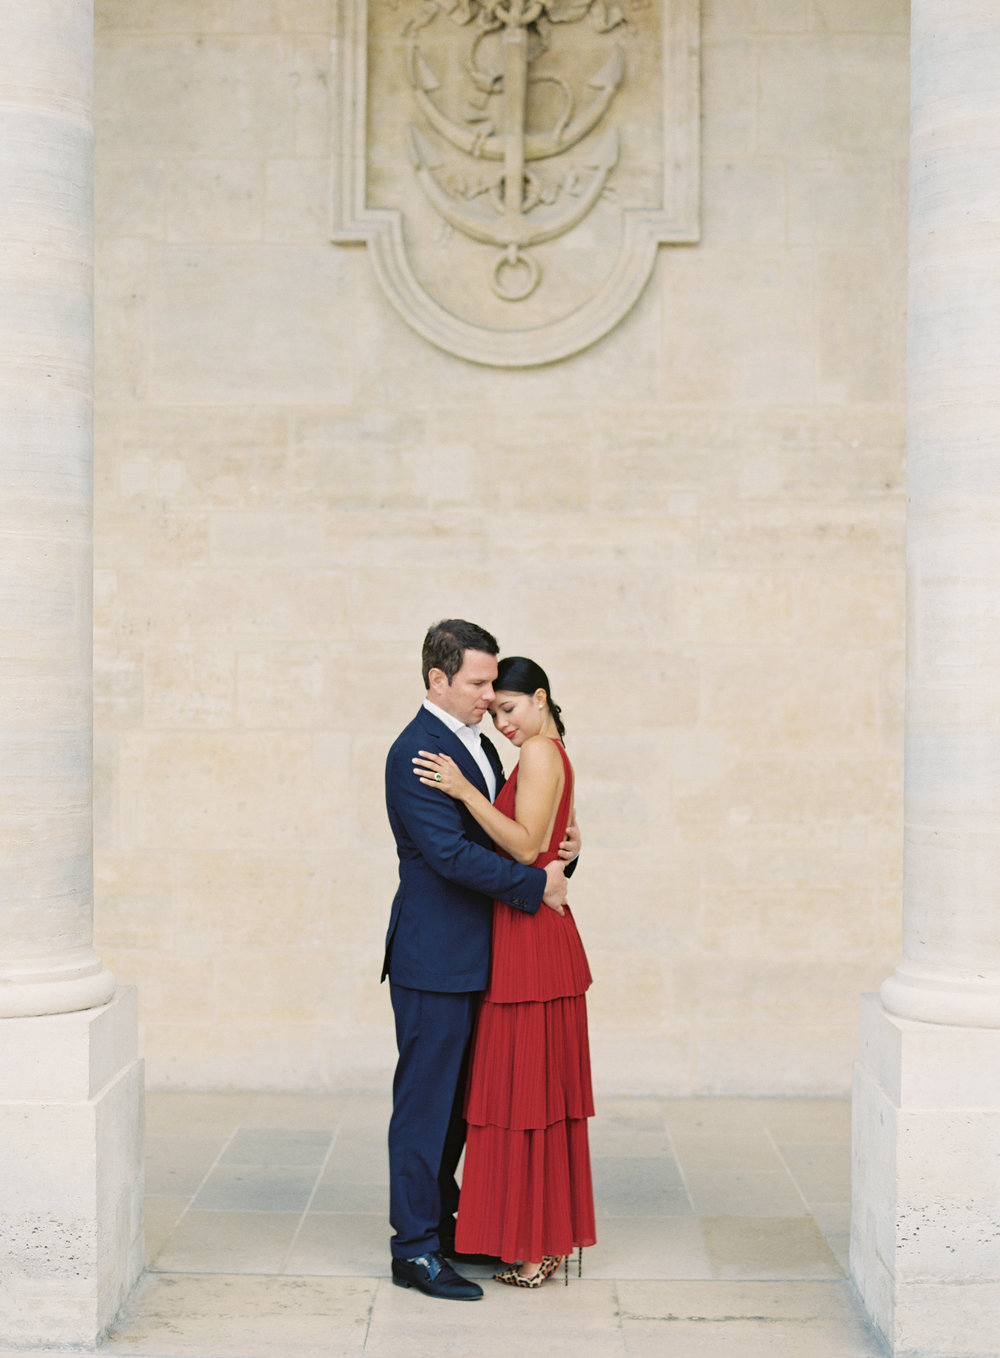 Paris engagement photography-Carrie King Photographer-11.jpg